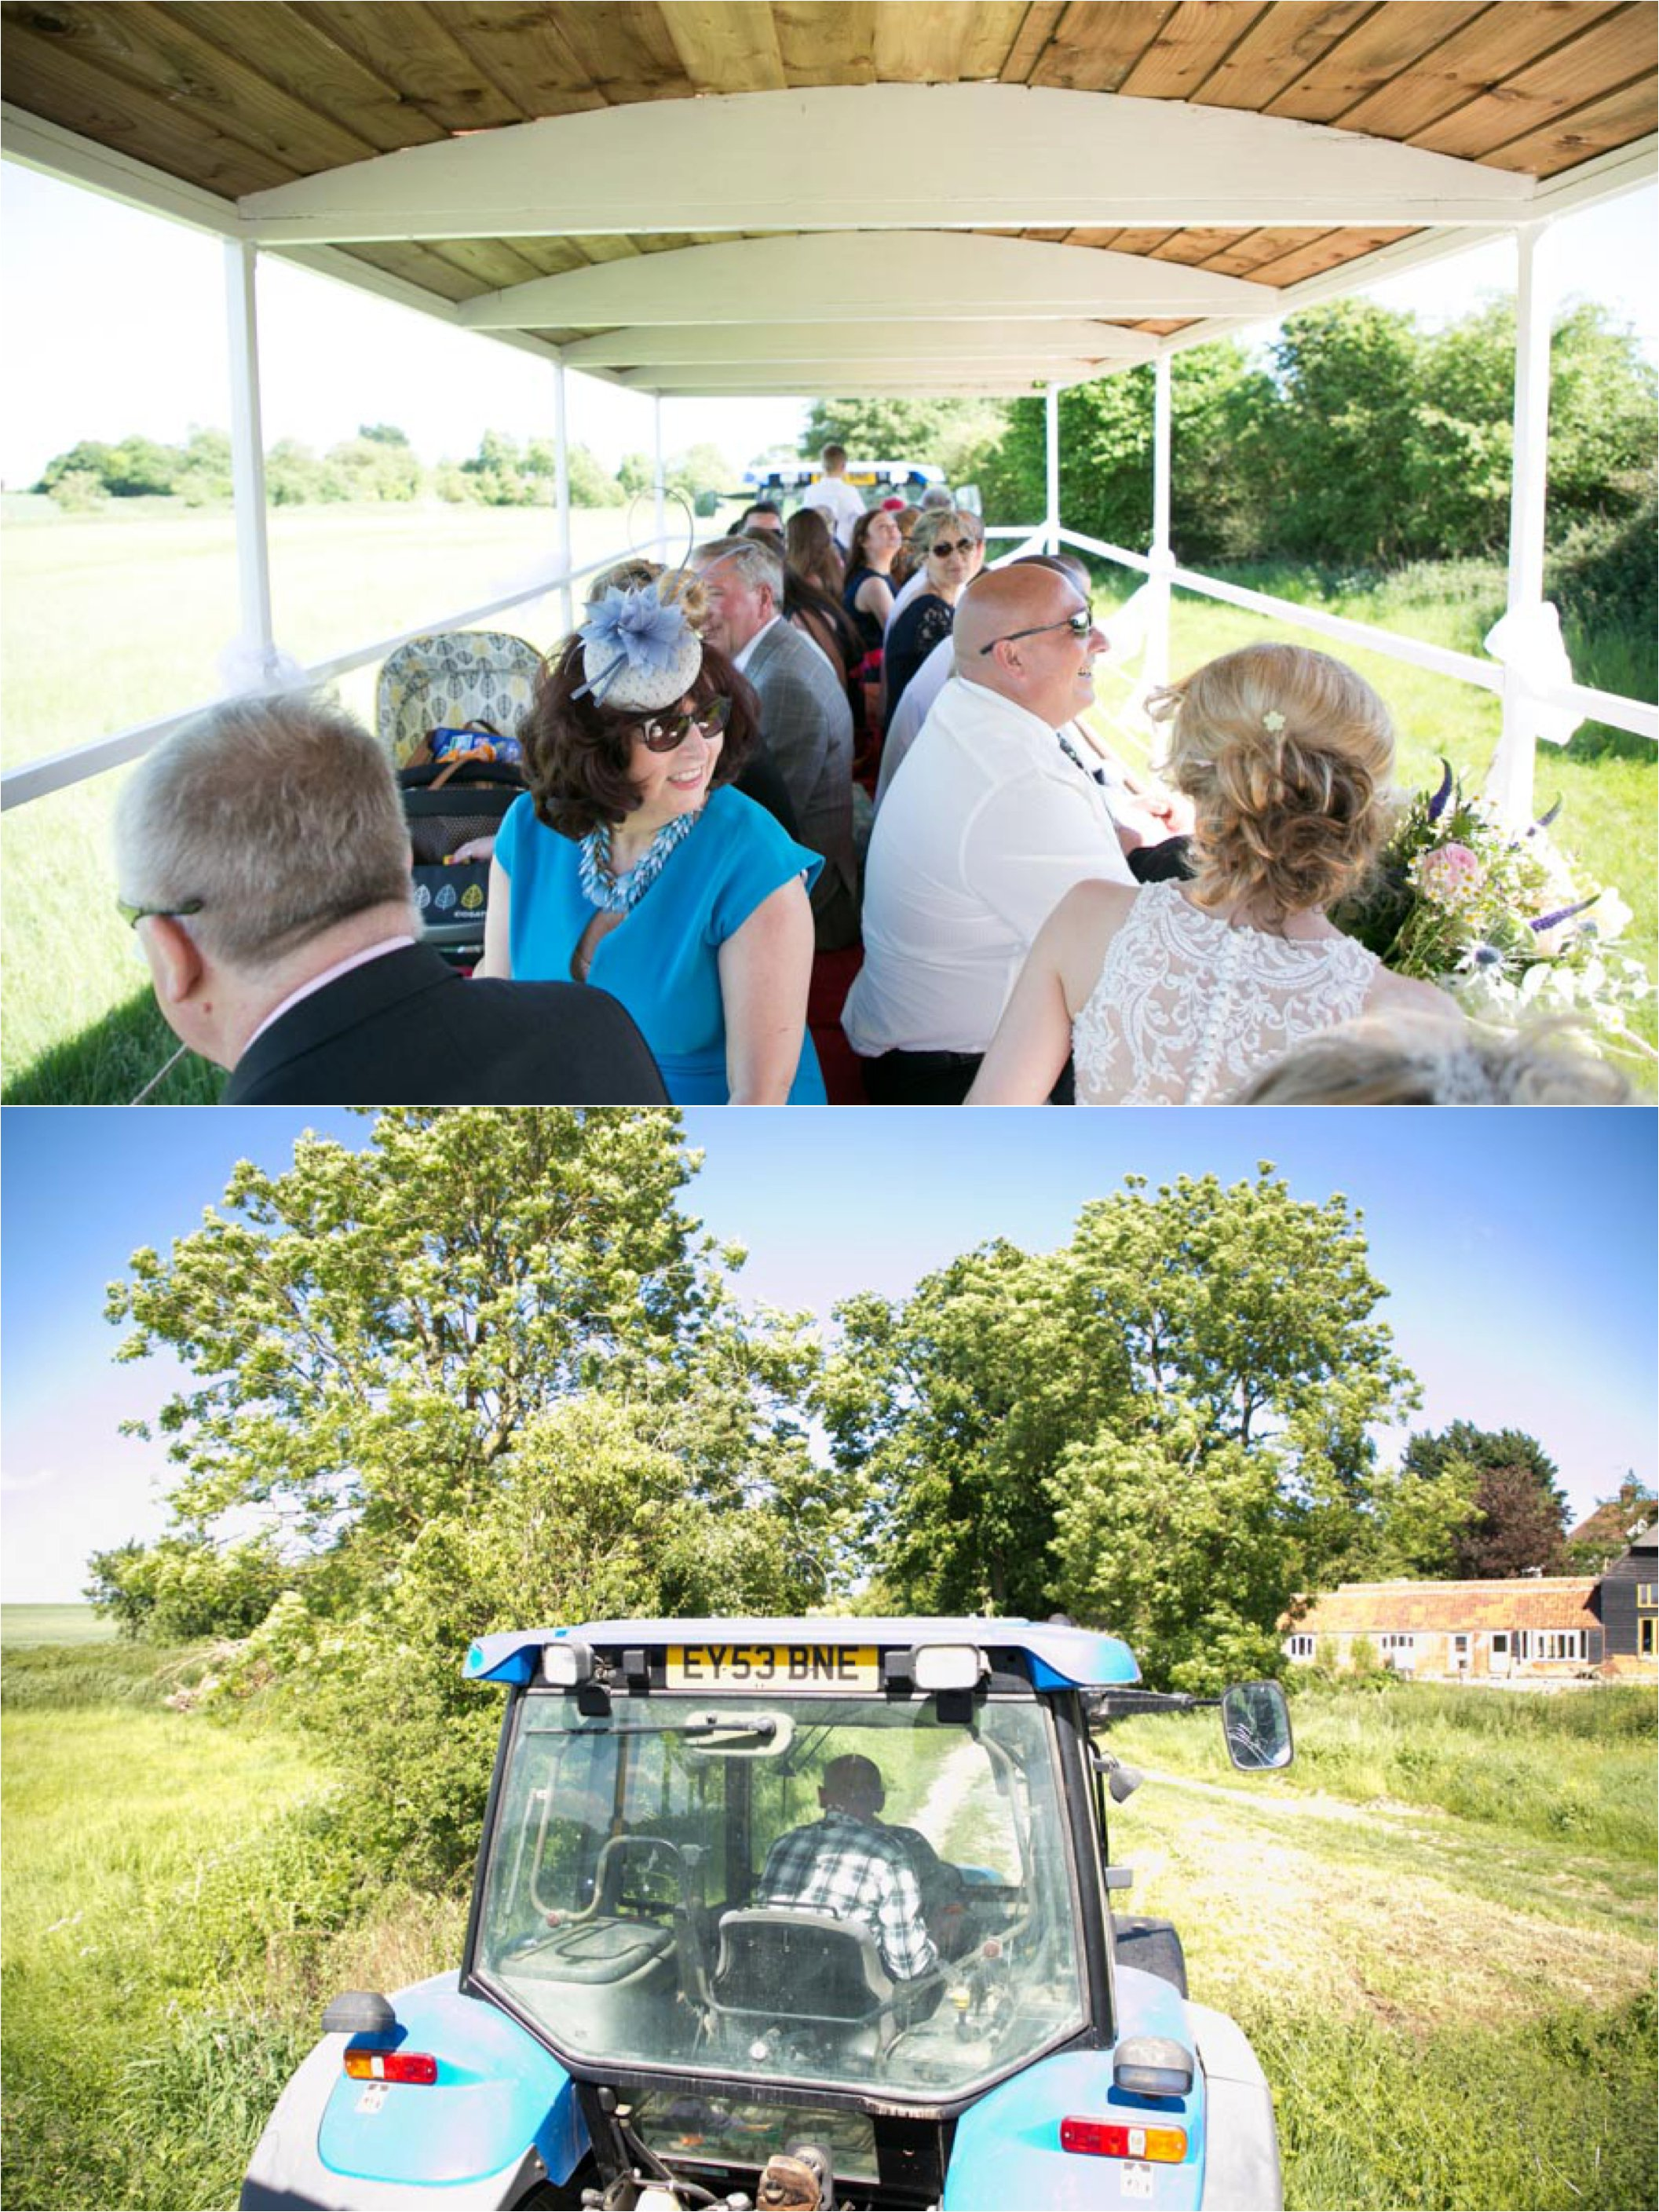 guests traveling by tractor at outdoor wedding reid rooms, essex